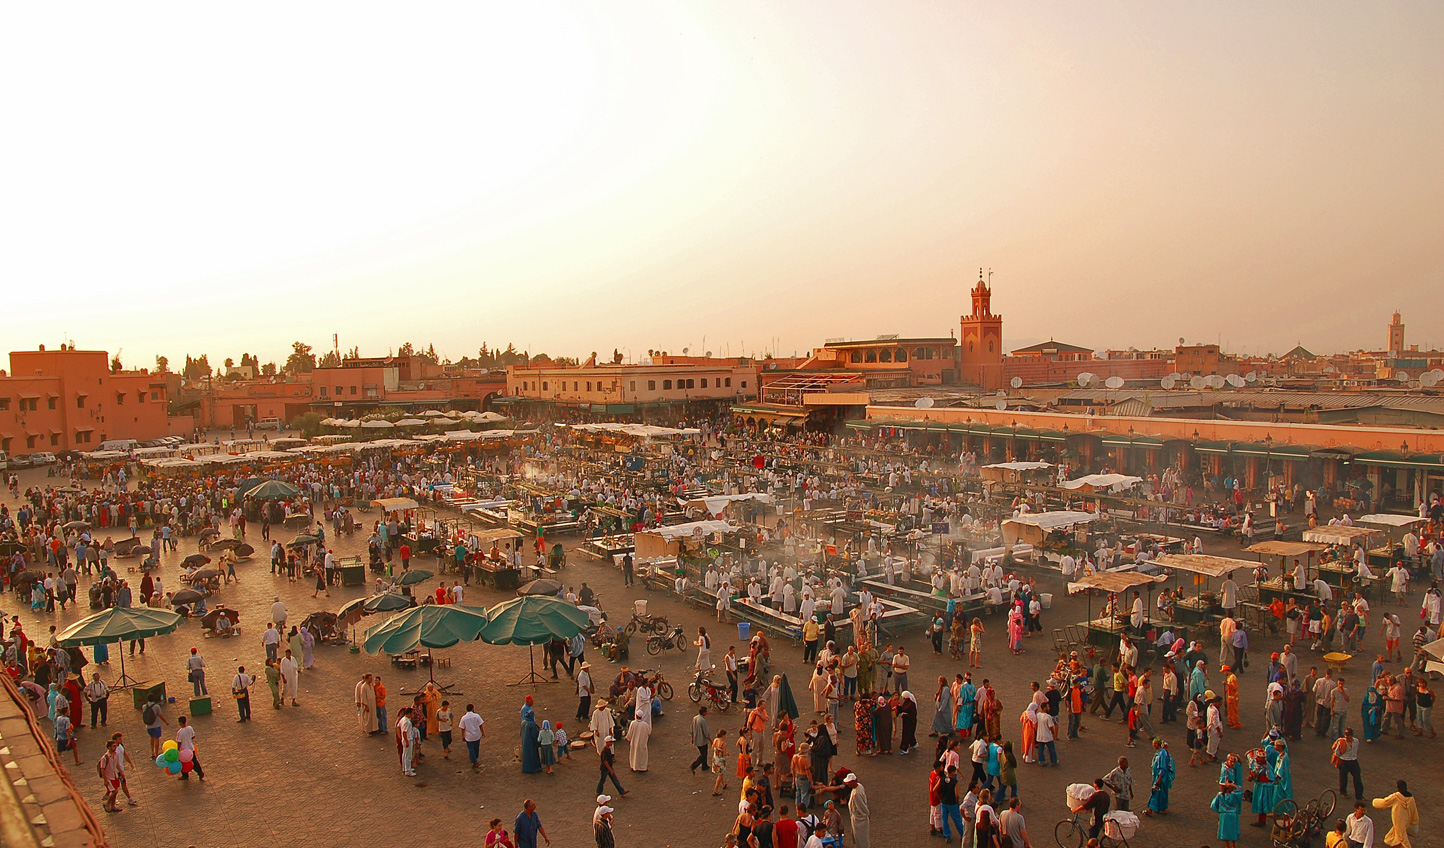 Start amid the hustle and bustle of Marrakech's Jemaa el Fna